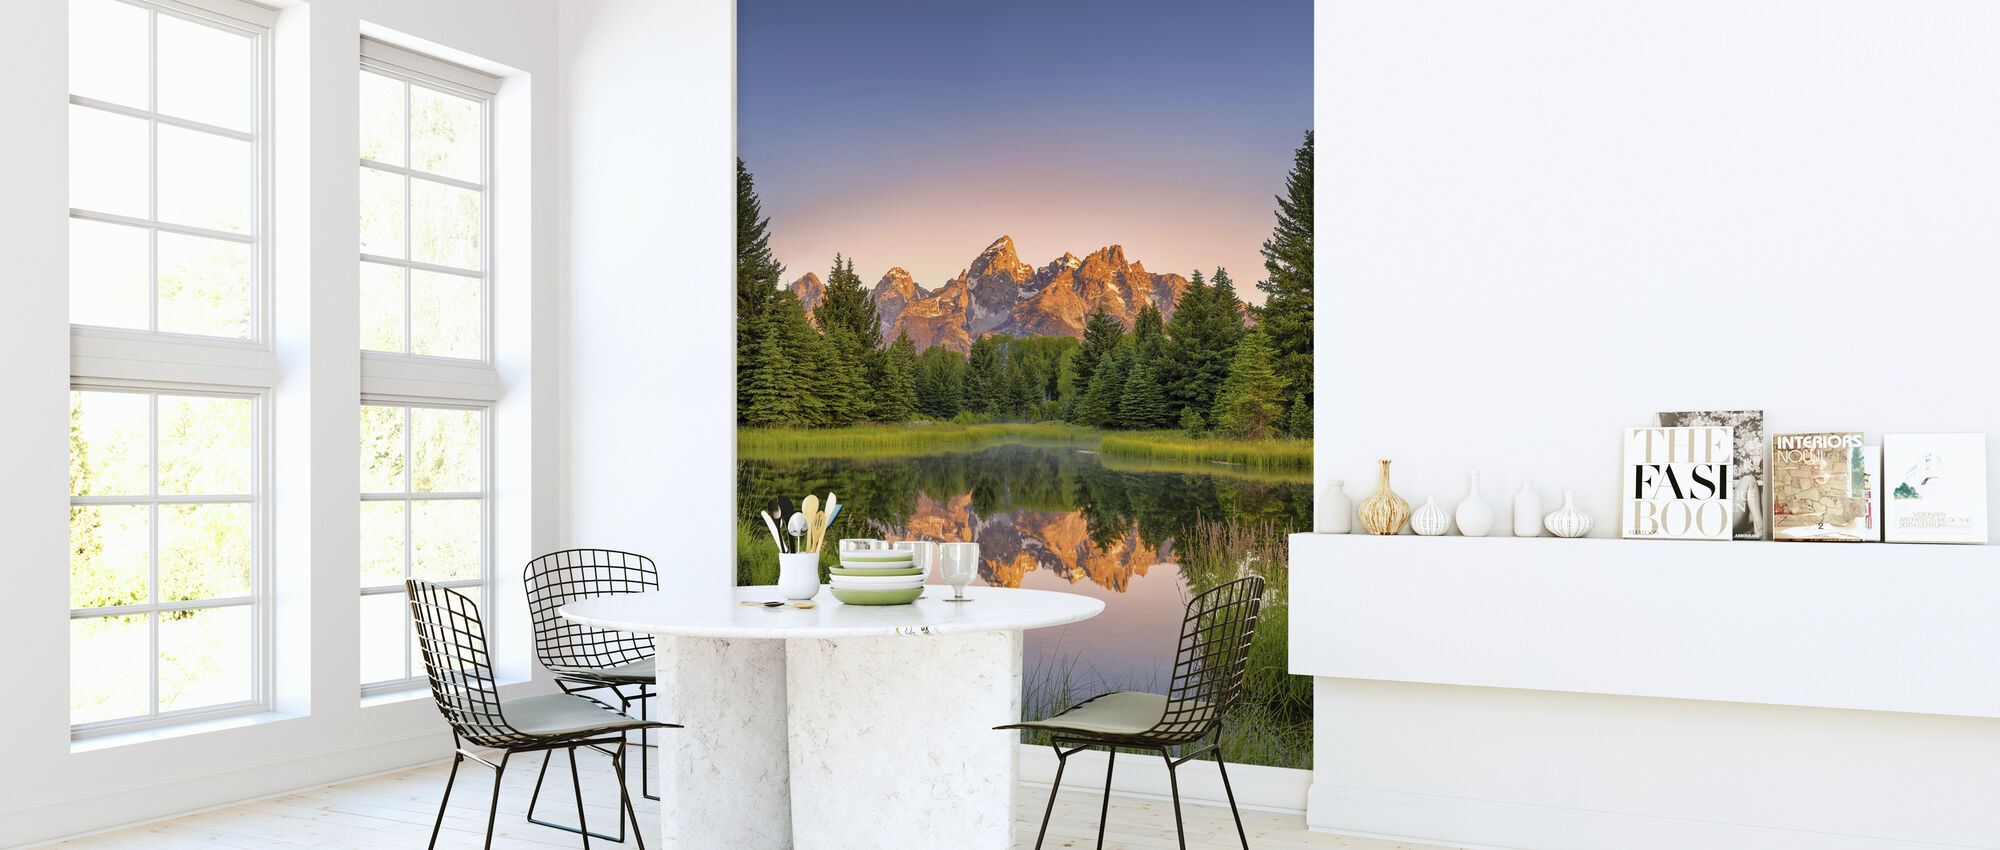 Dawn at Schwabacher's Landing - Wallpaper - Kitchen